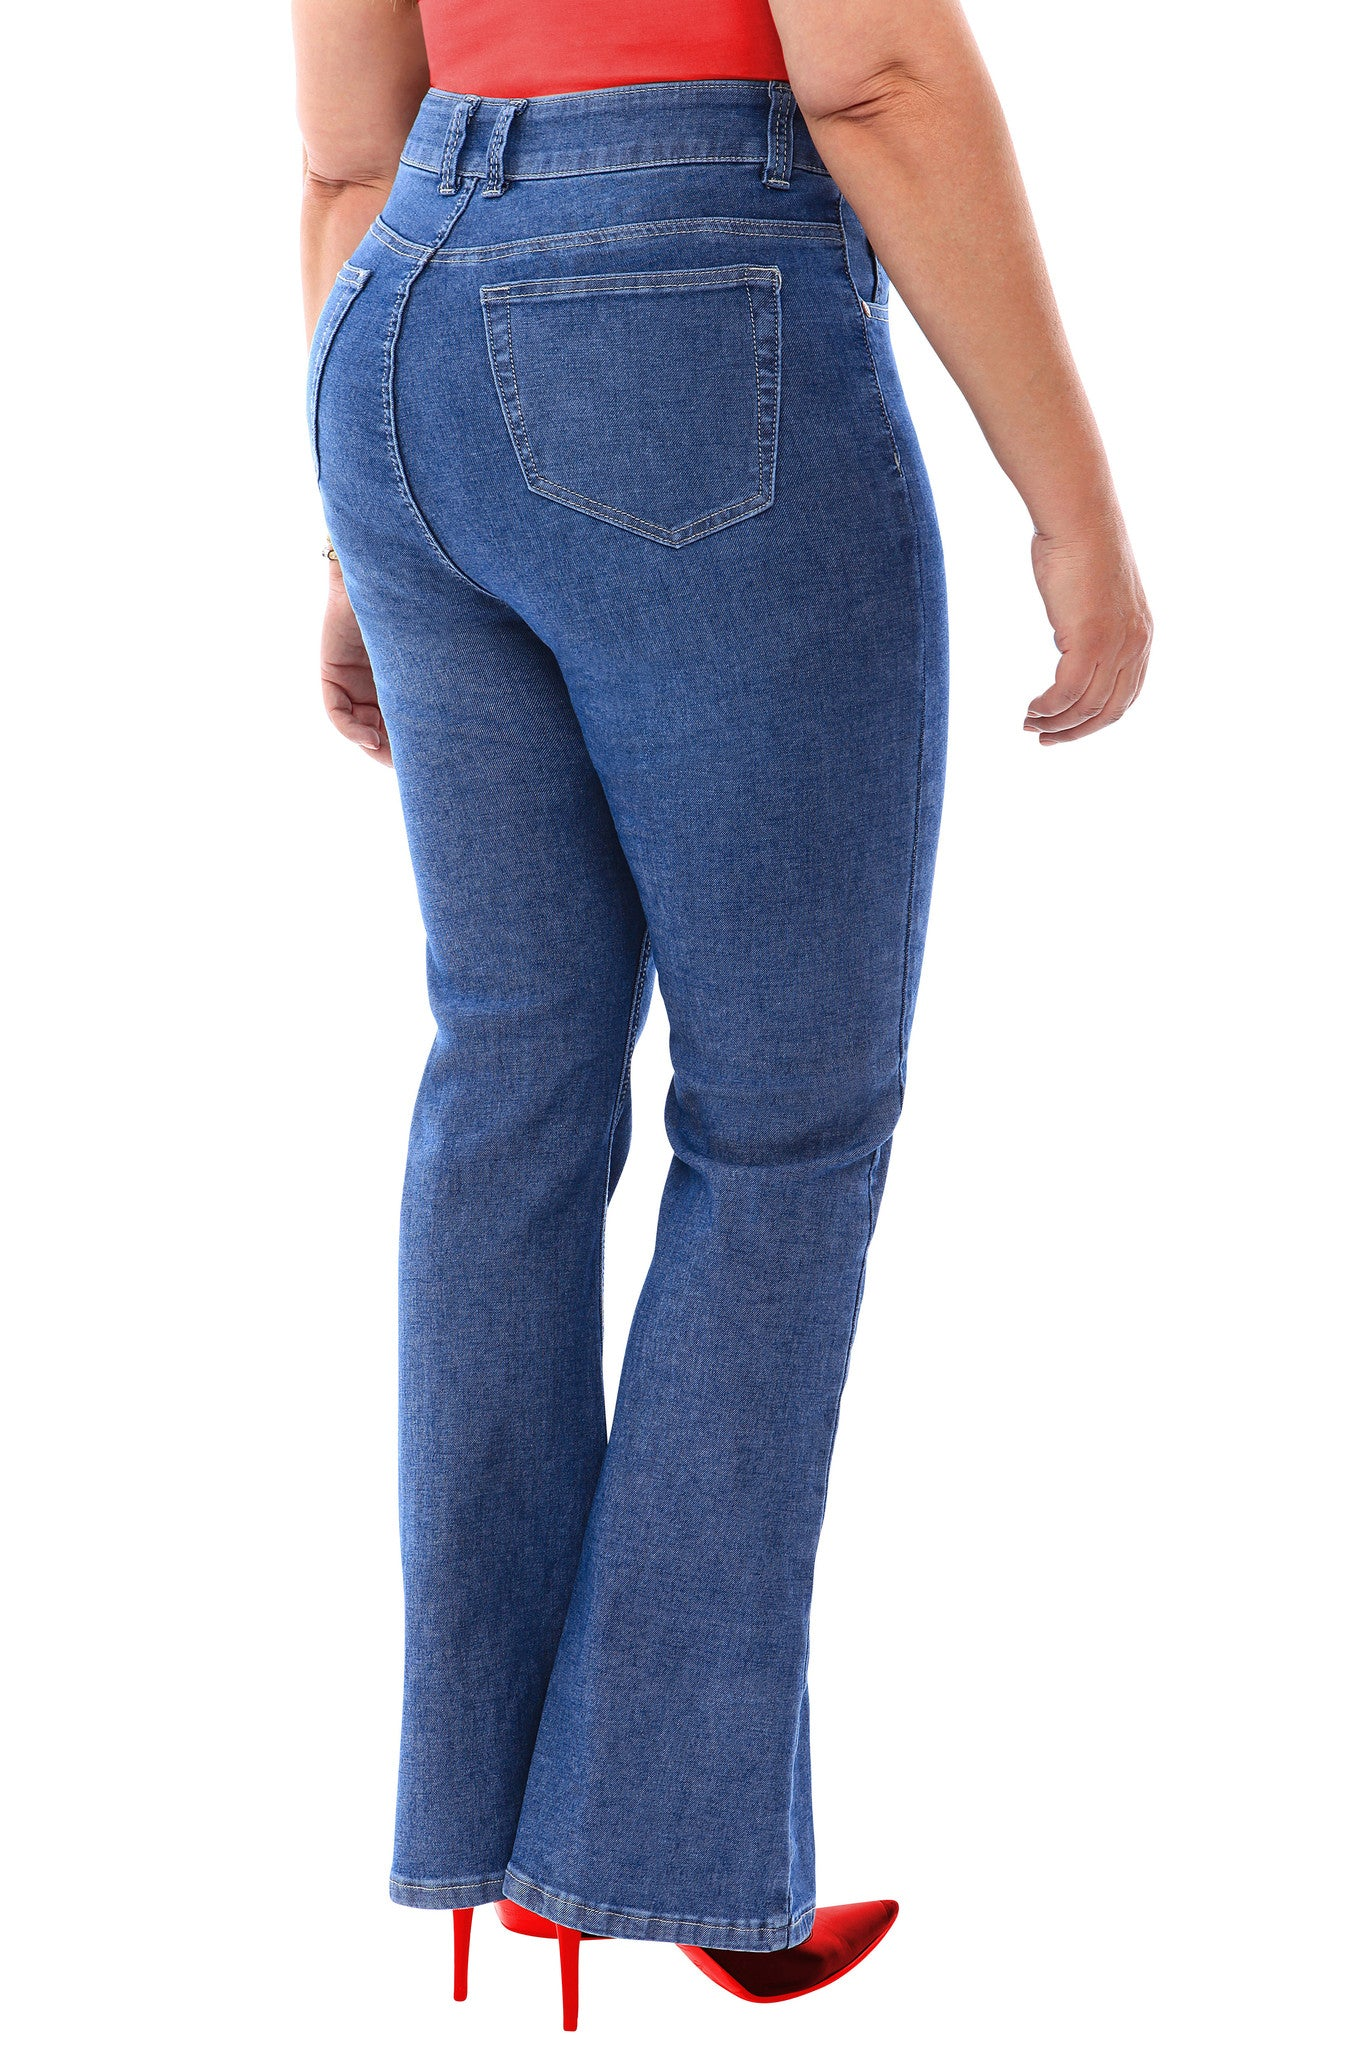 360 Stretch High Rise Flea Market Flare Jeans in Medium Blue